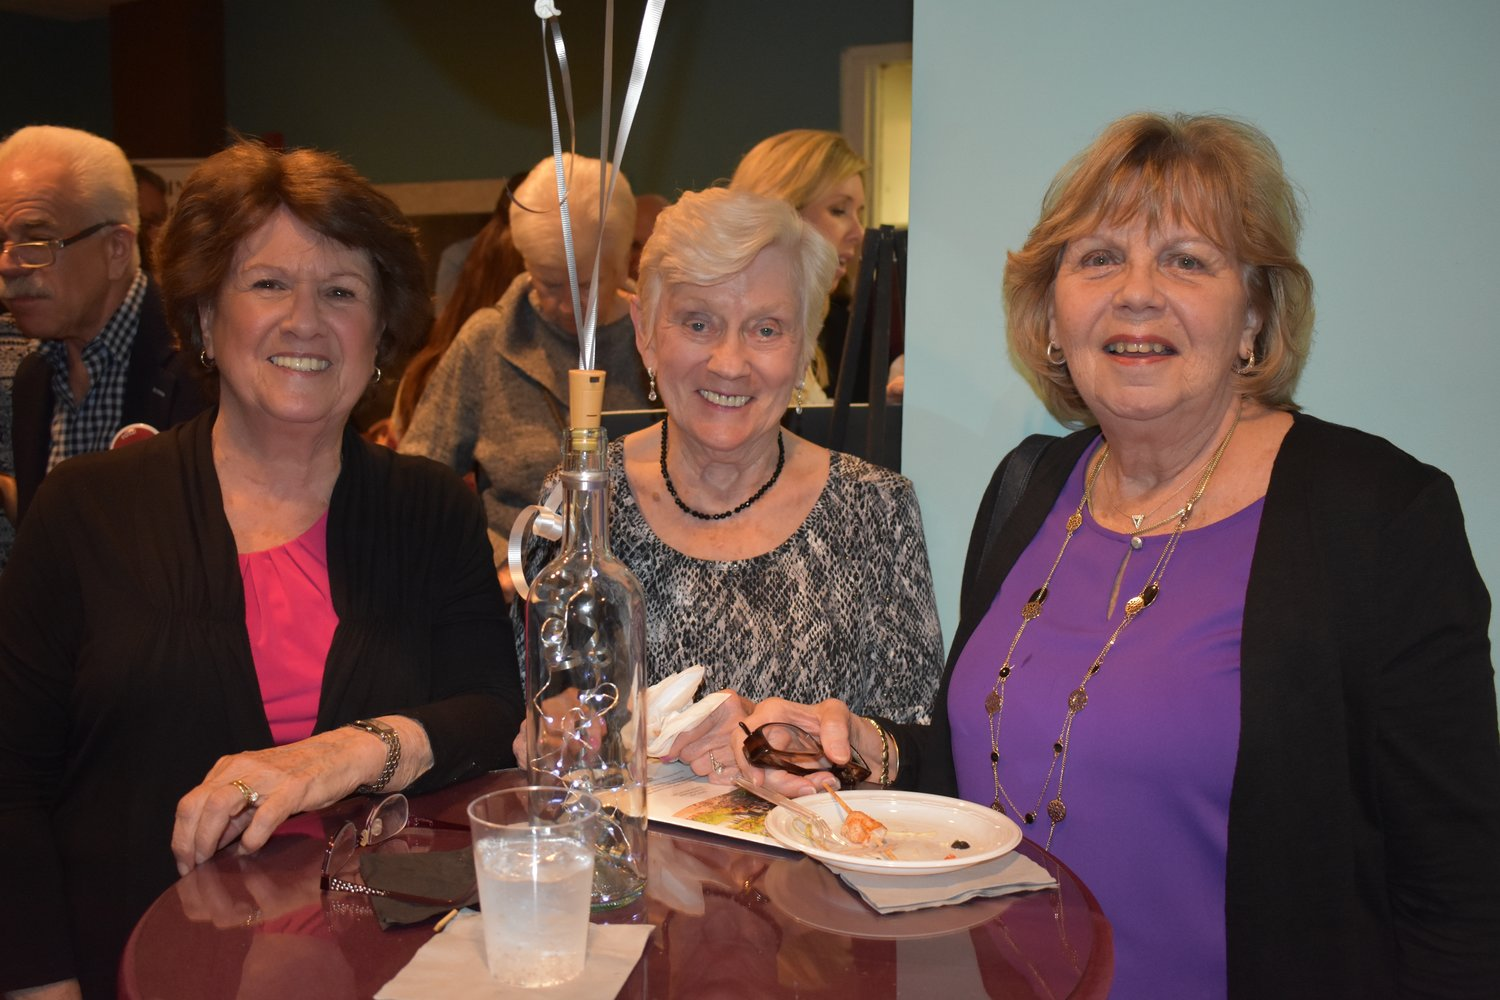 Bea Heaney, left, Pat Turner and Carol Hertel enjoyed some food.